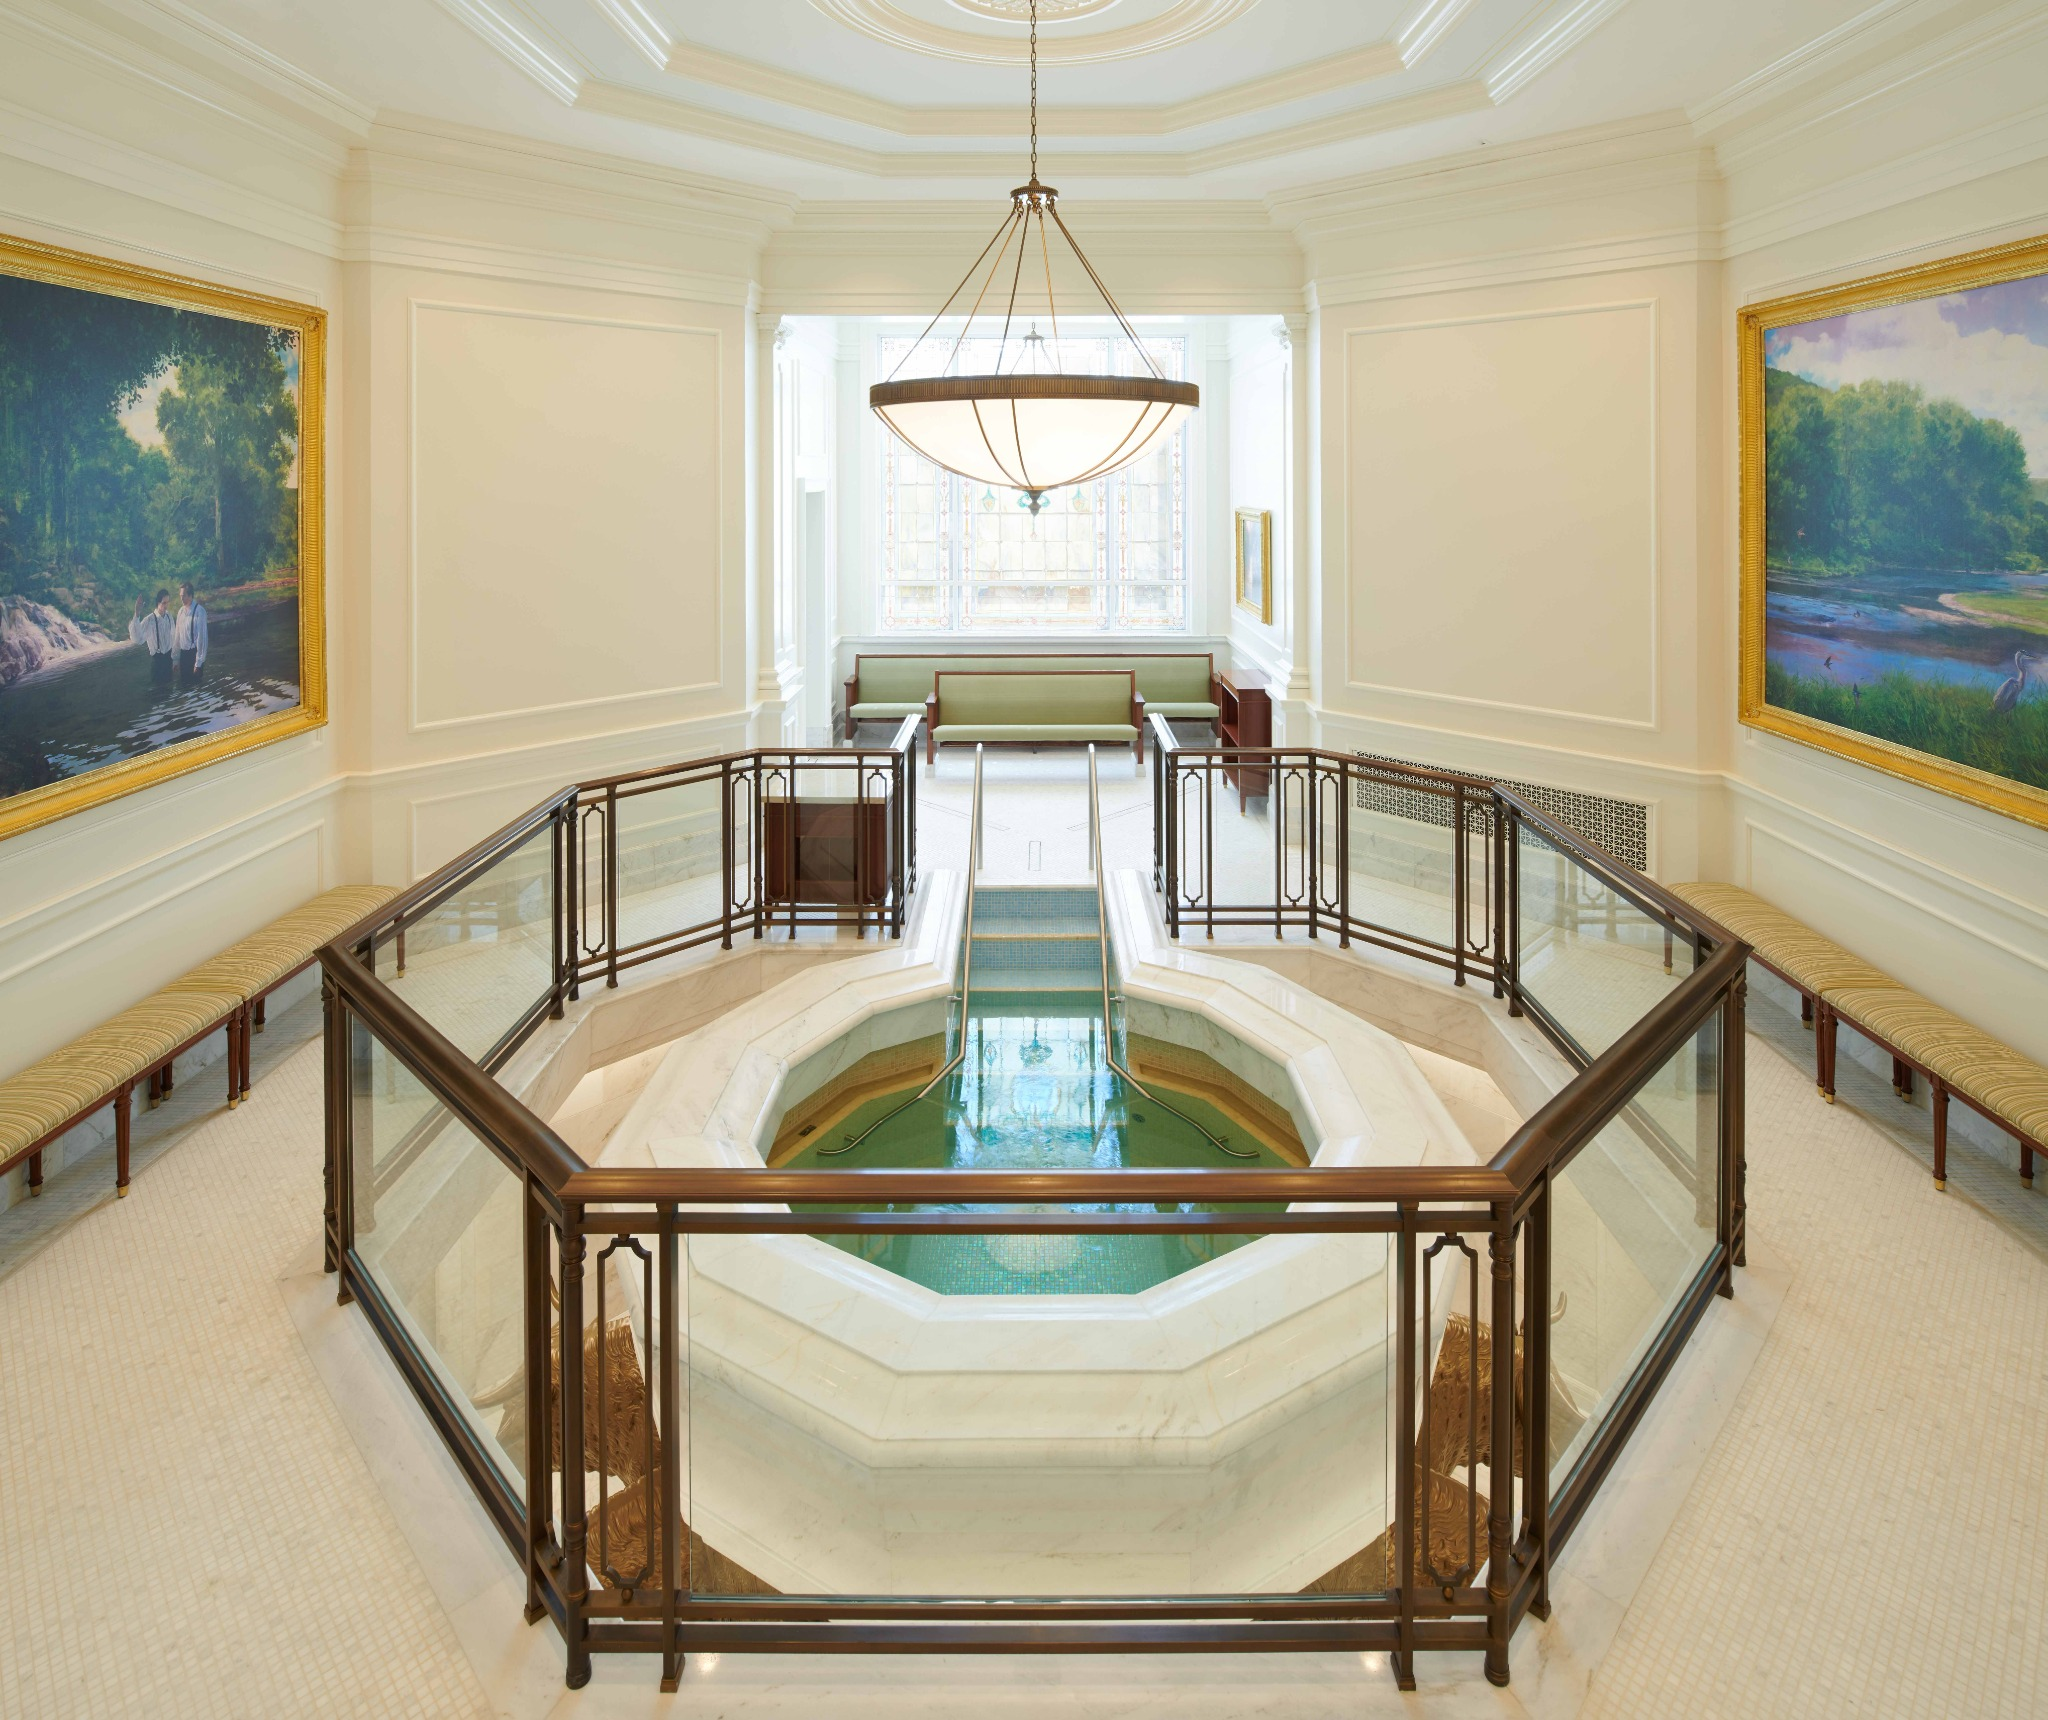 The baptistry in the Baton Rouge Louisiana Temple.